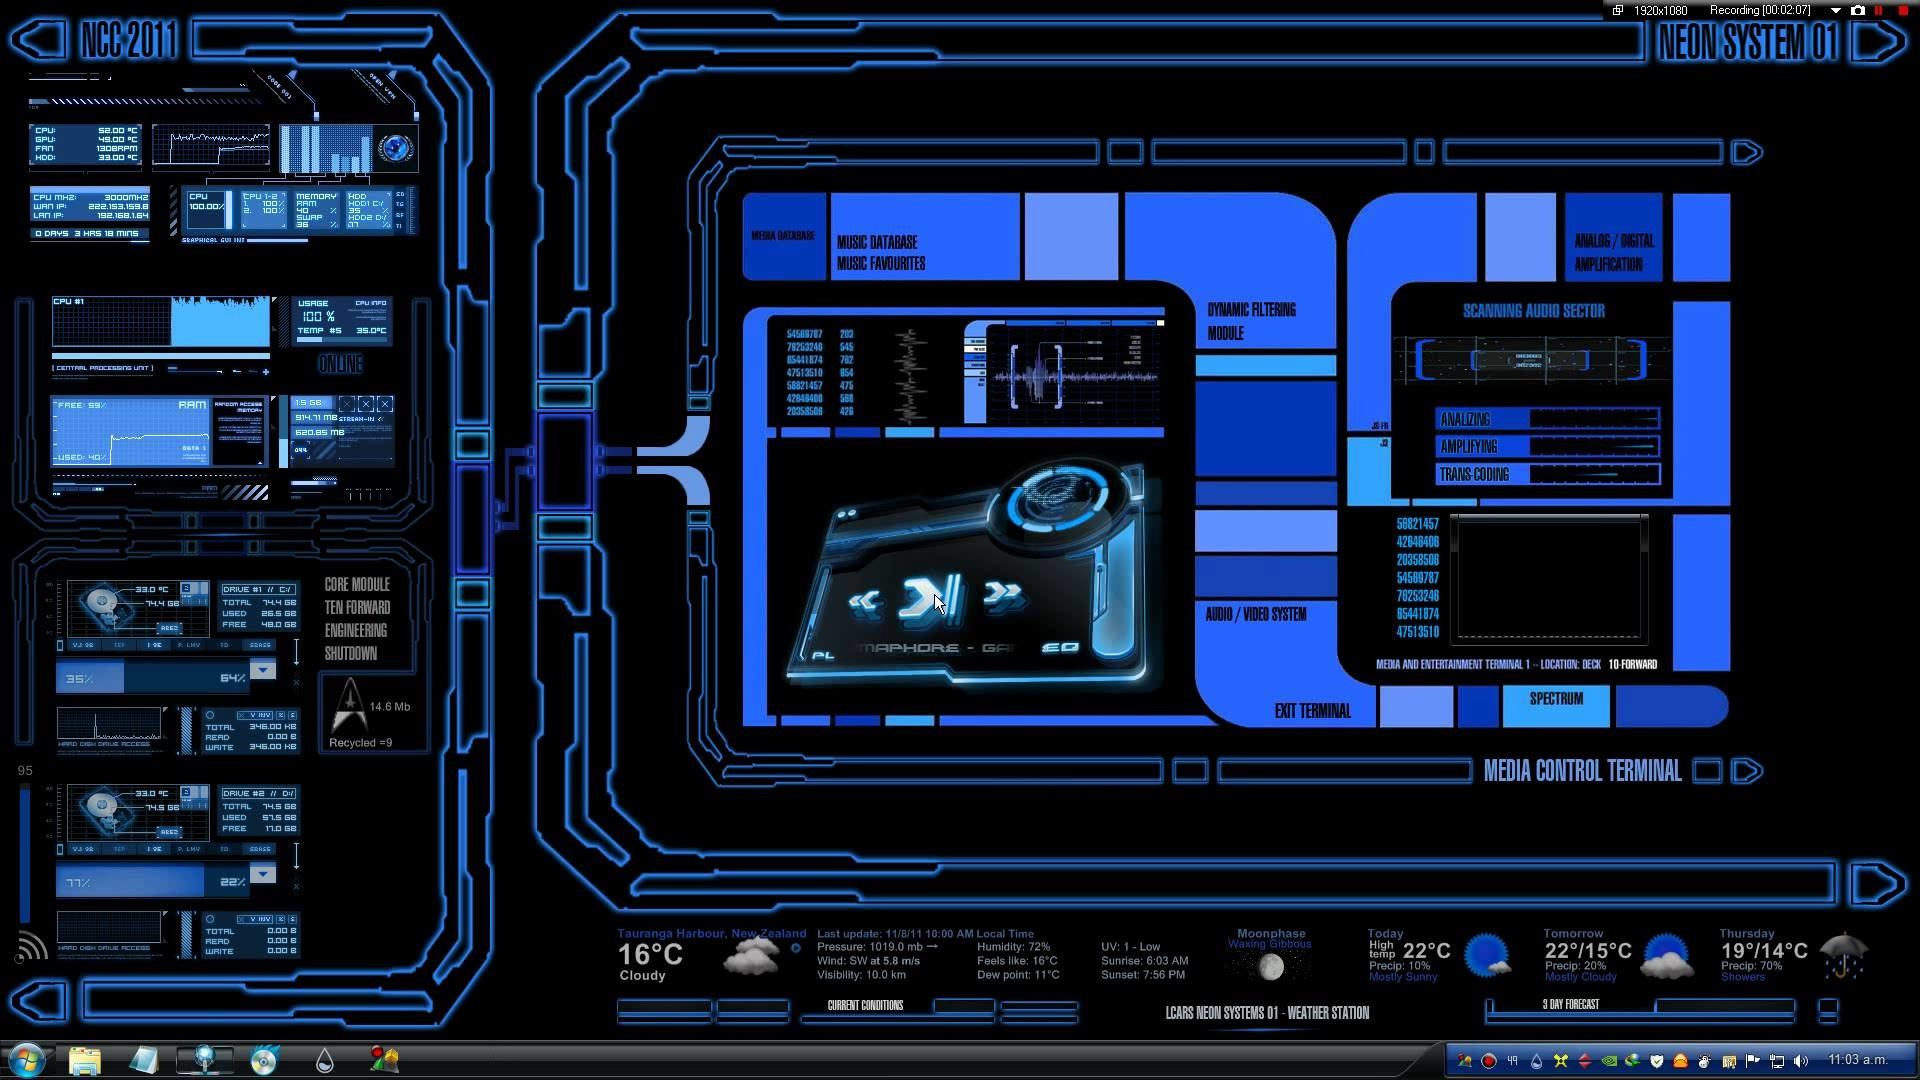 Star trek control panel wallpaper 62 images for Panel wallpaper